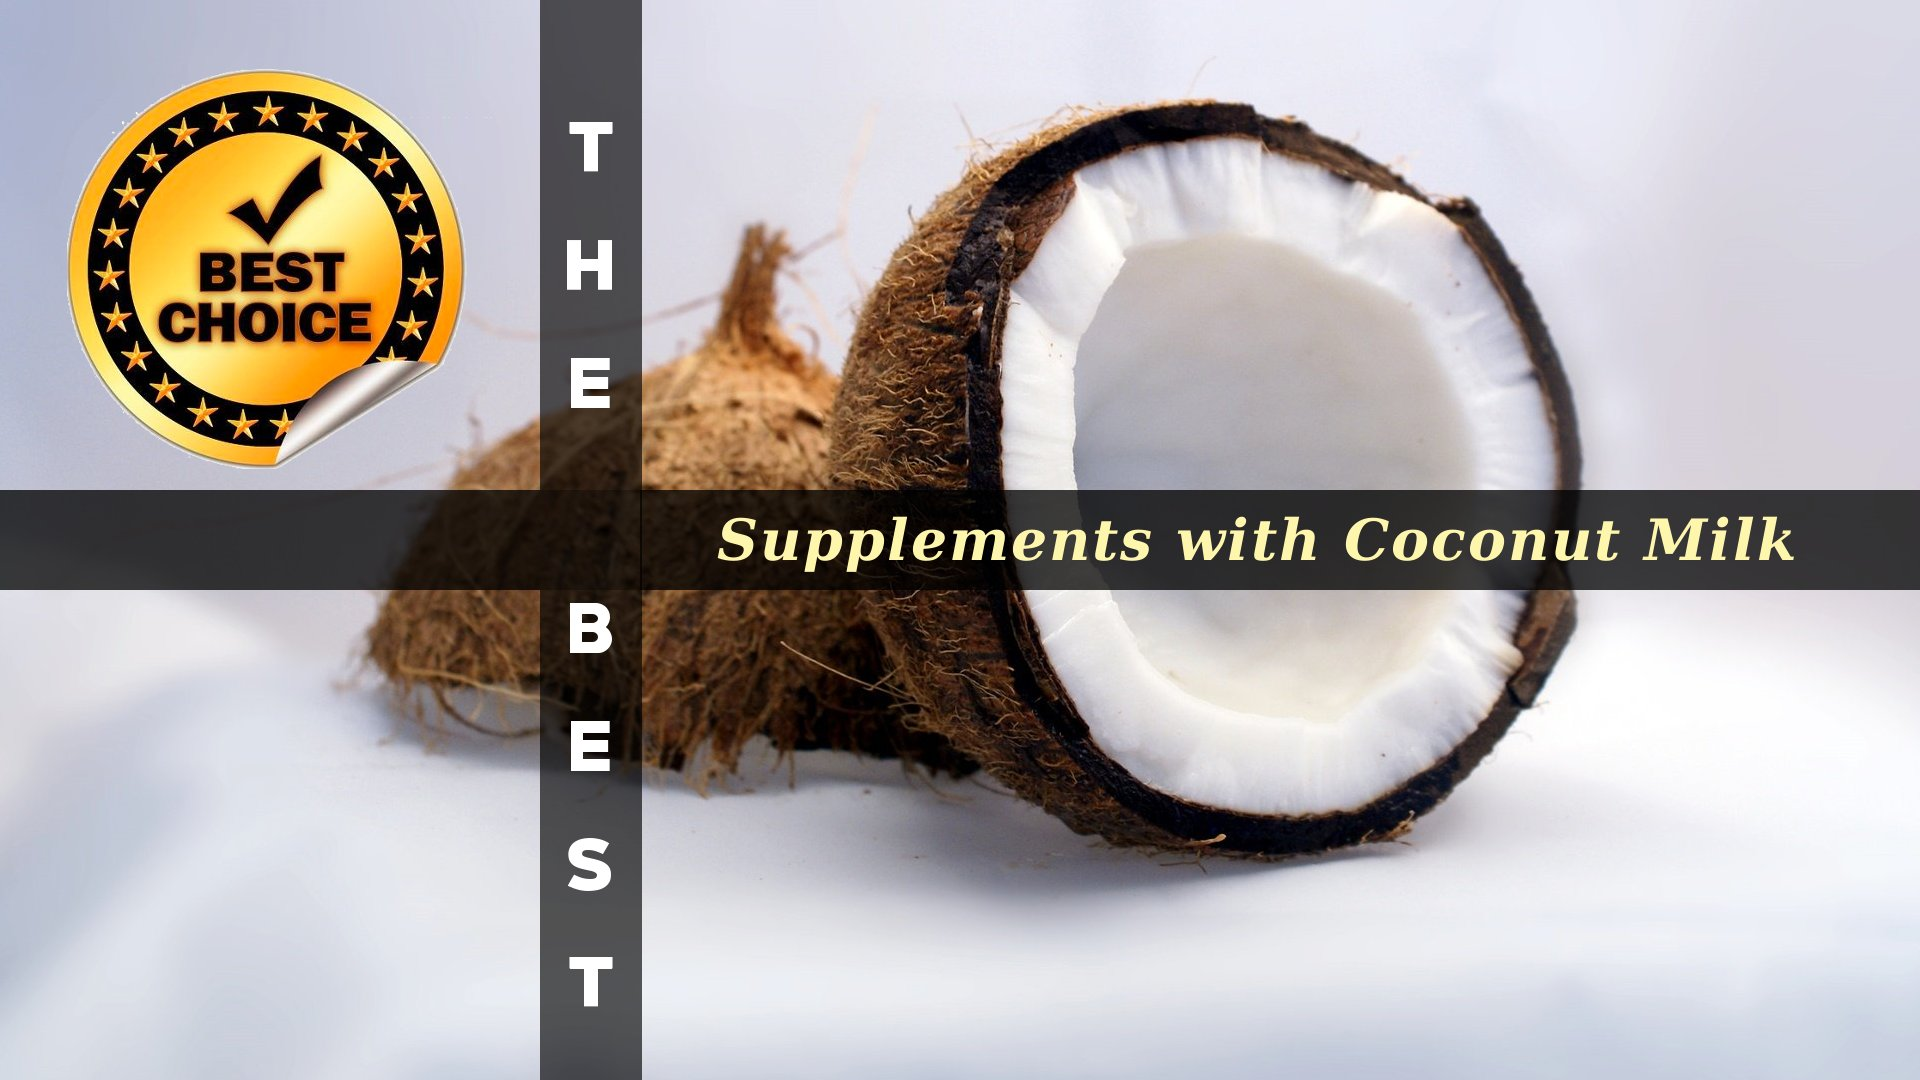 The Supplements with Coconut